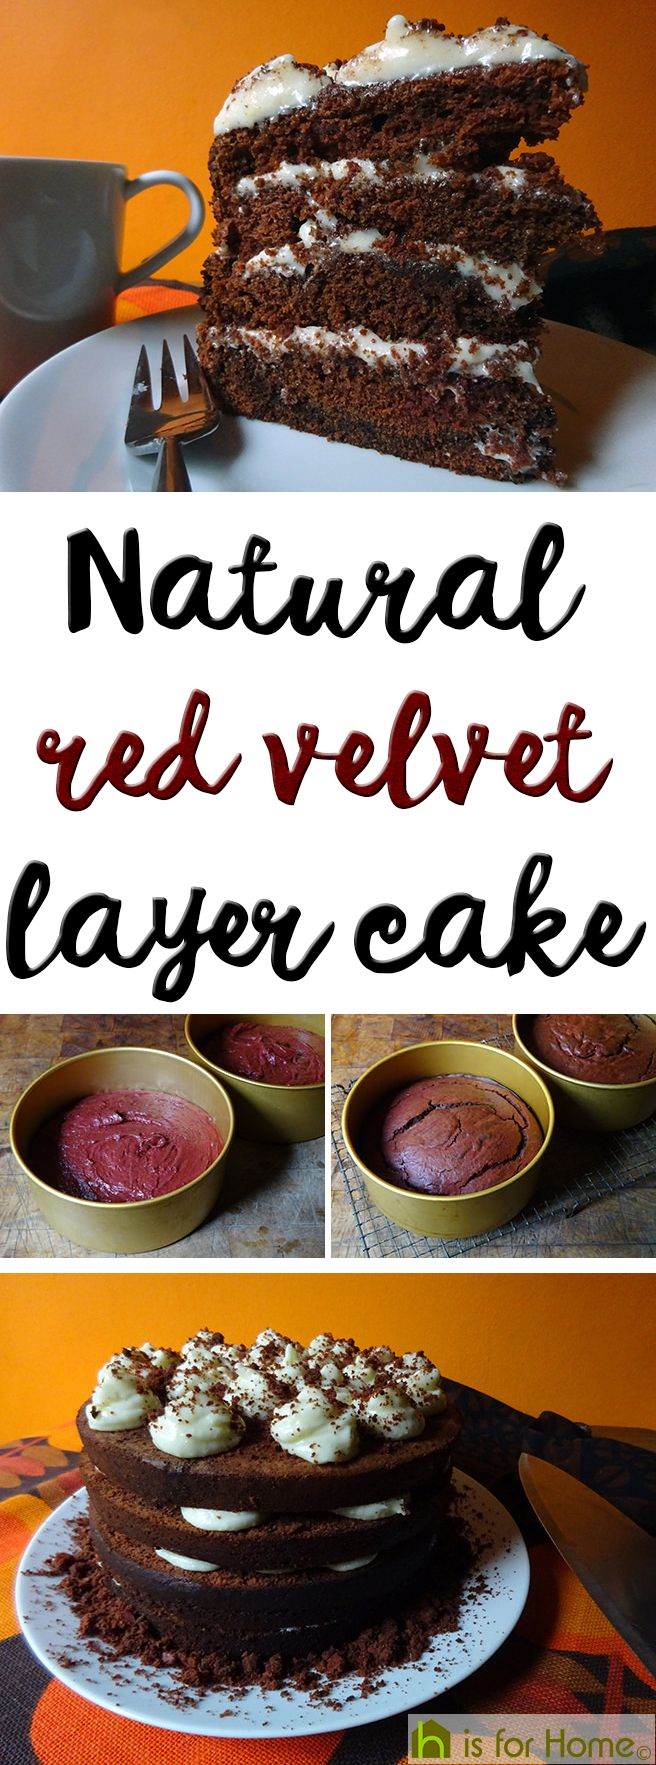 Natural red velvet layer cake | H is for Home  #recipe #fdbloggers #RedVelvet #cake